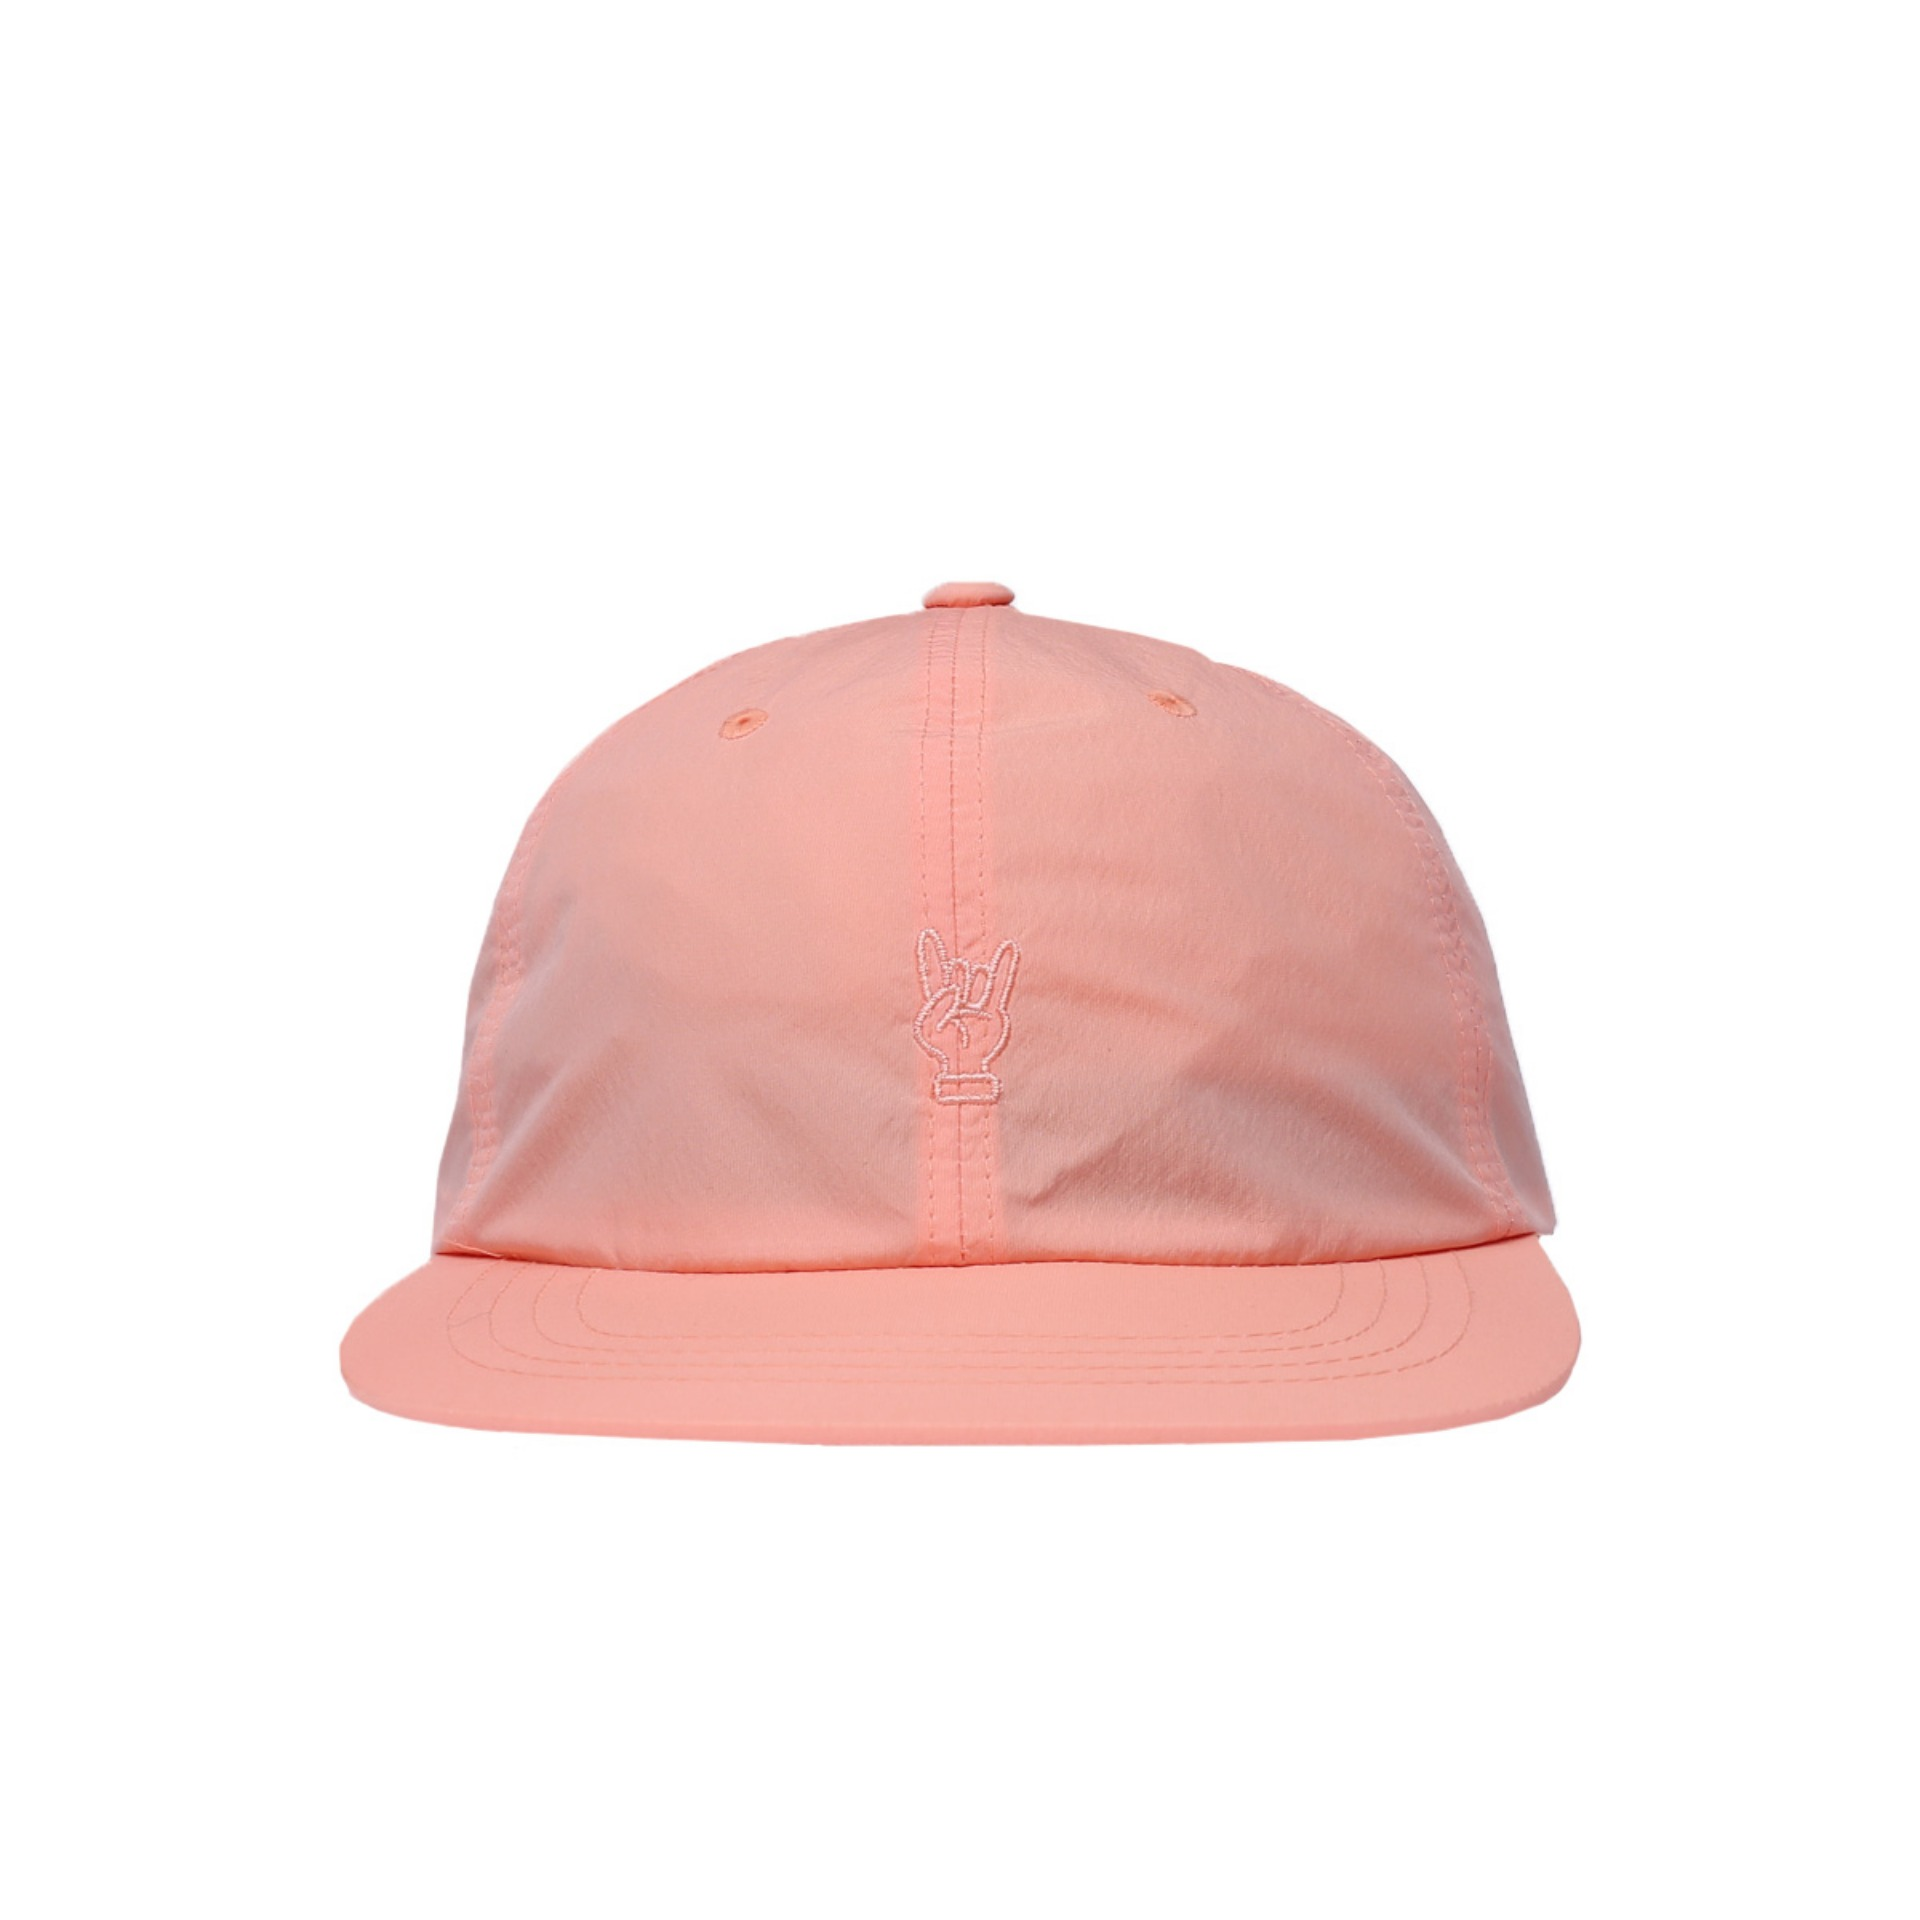 6PANNEL BALL CAP (CORAL PINK)